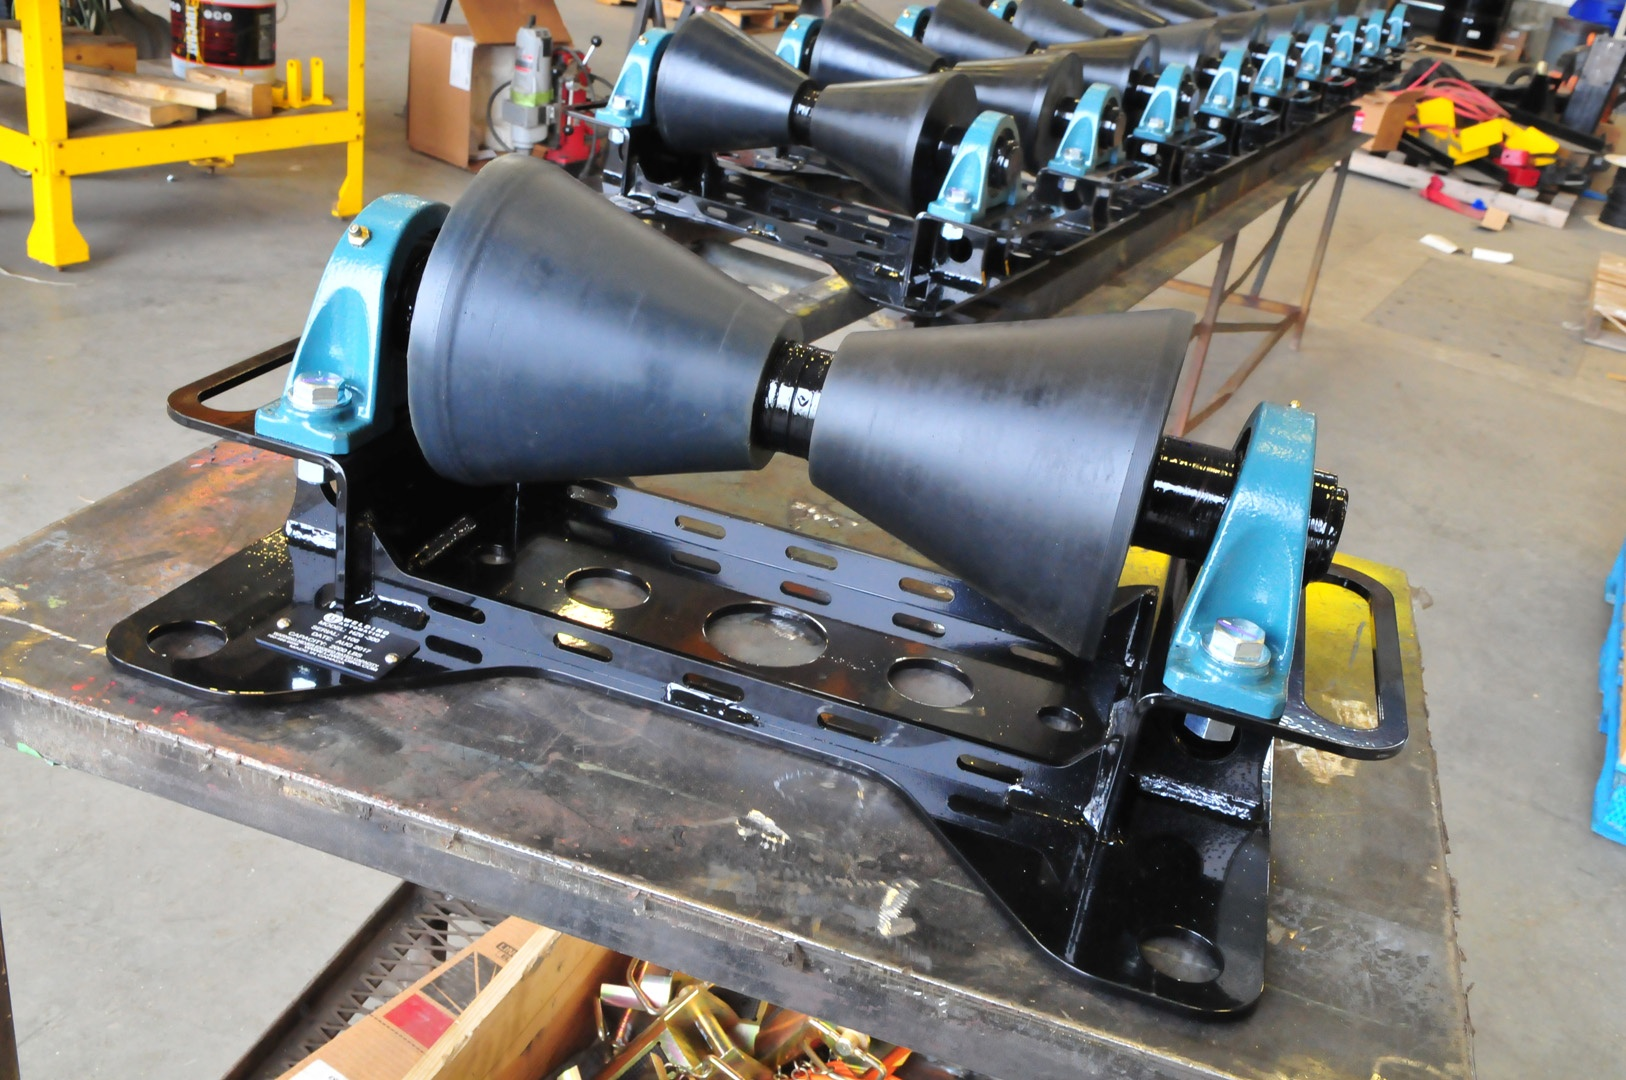 finished pipeline rollers with 1-ton capacity fully painted